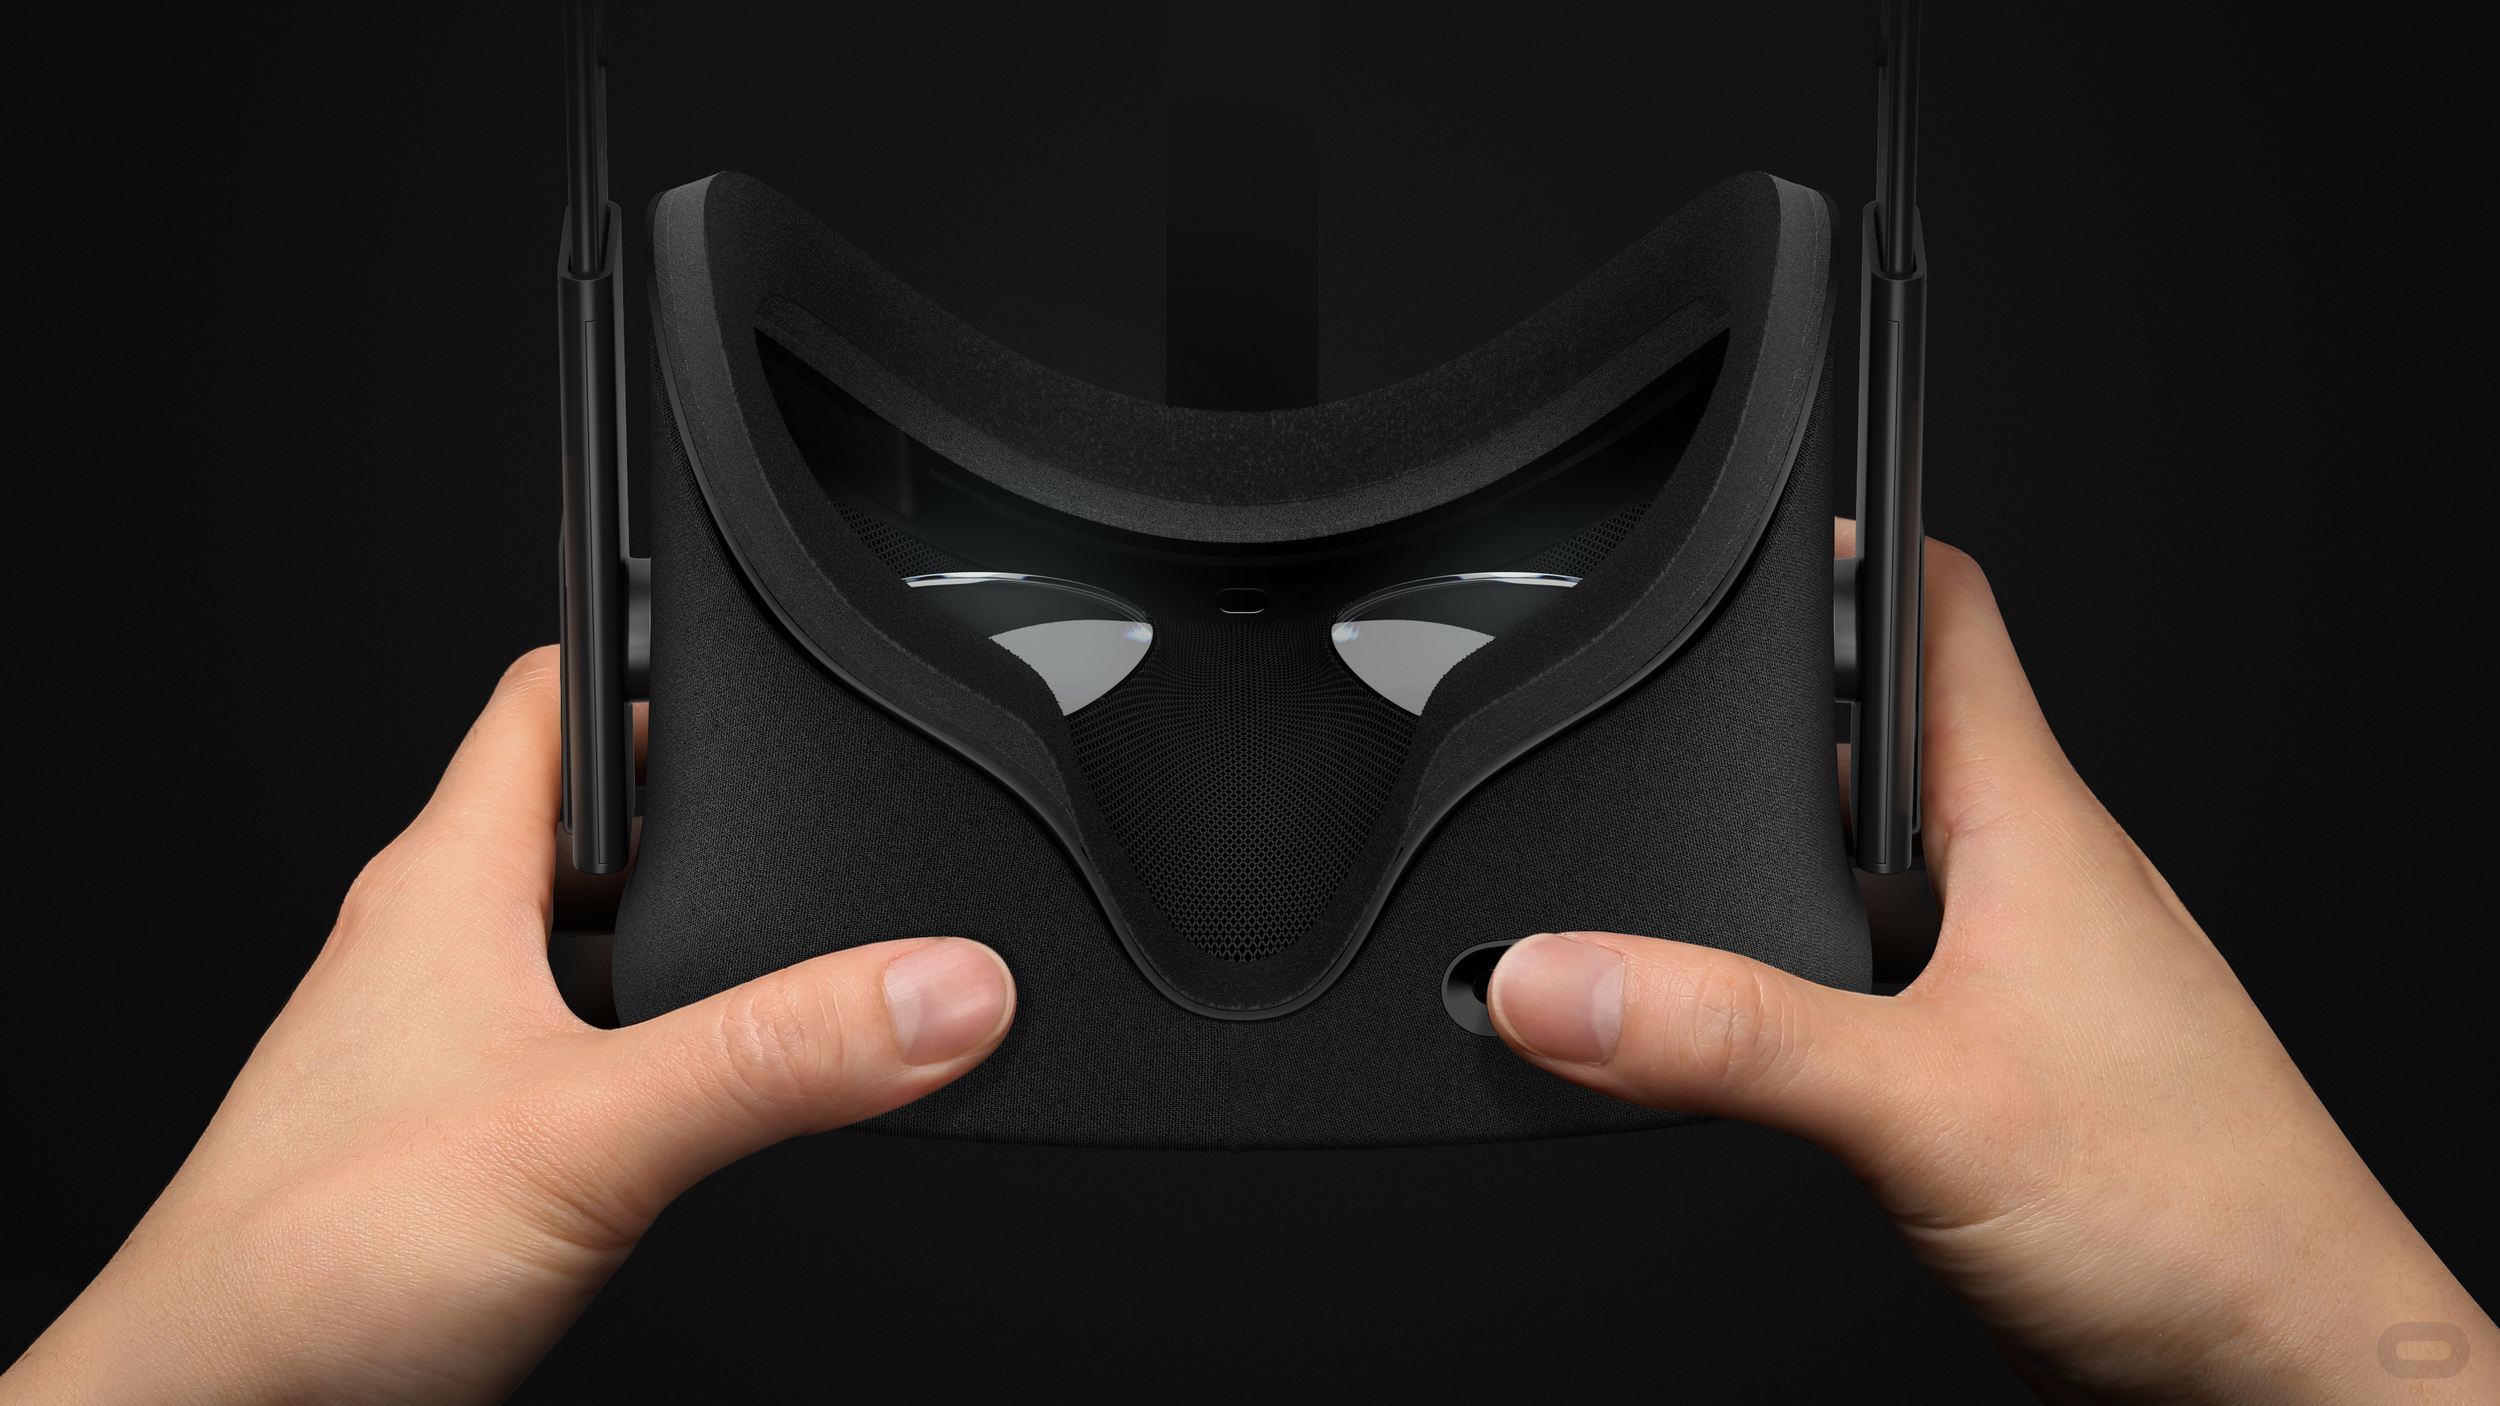 The final release version of the Oculus Rift